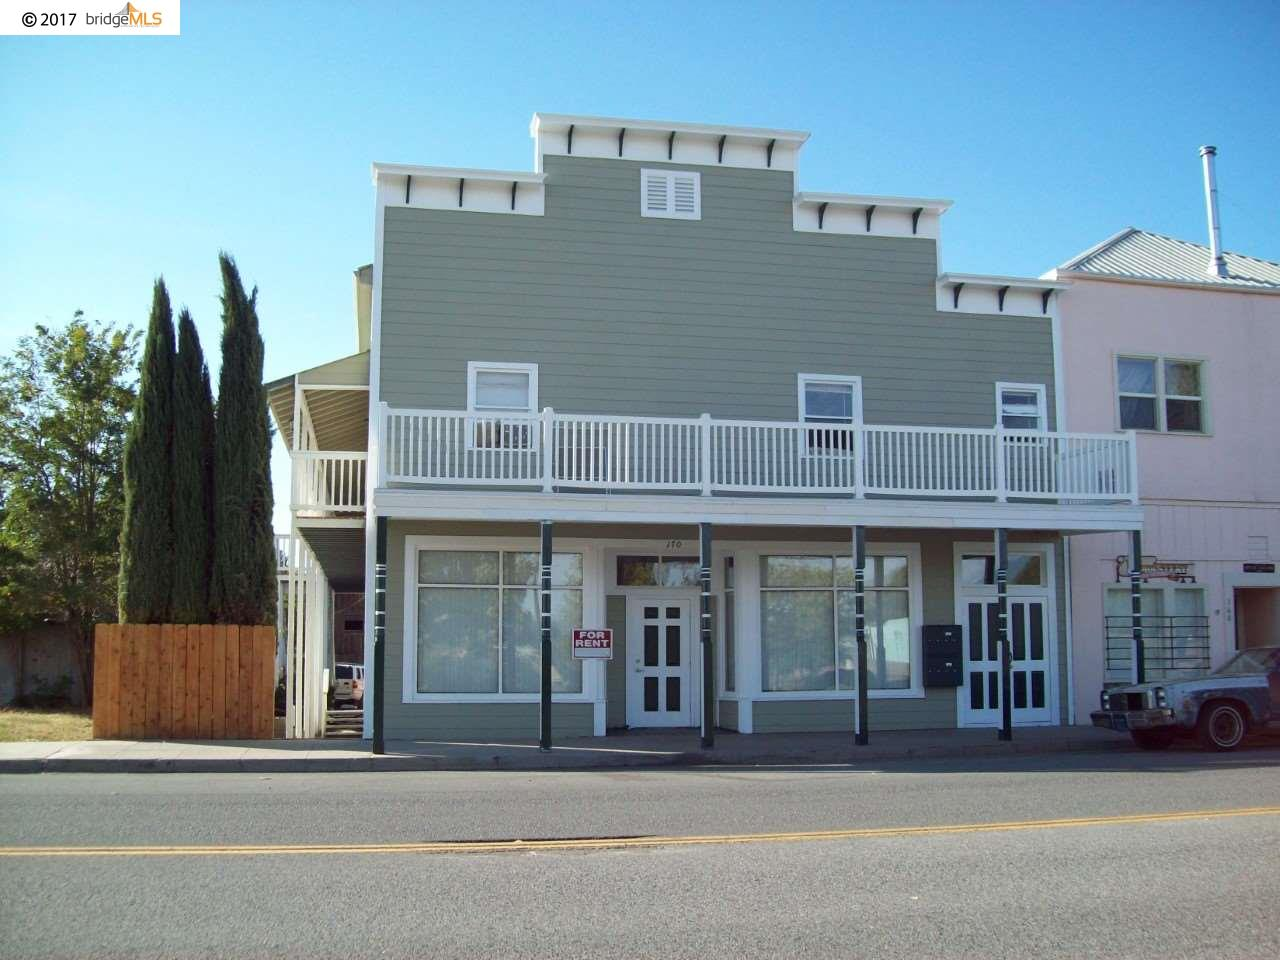 Multi-Family Home for Sale at 165 S 11Th Street 165 S 11Th Street Montague, California 96064 United States